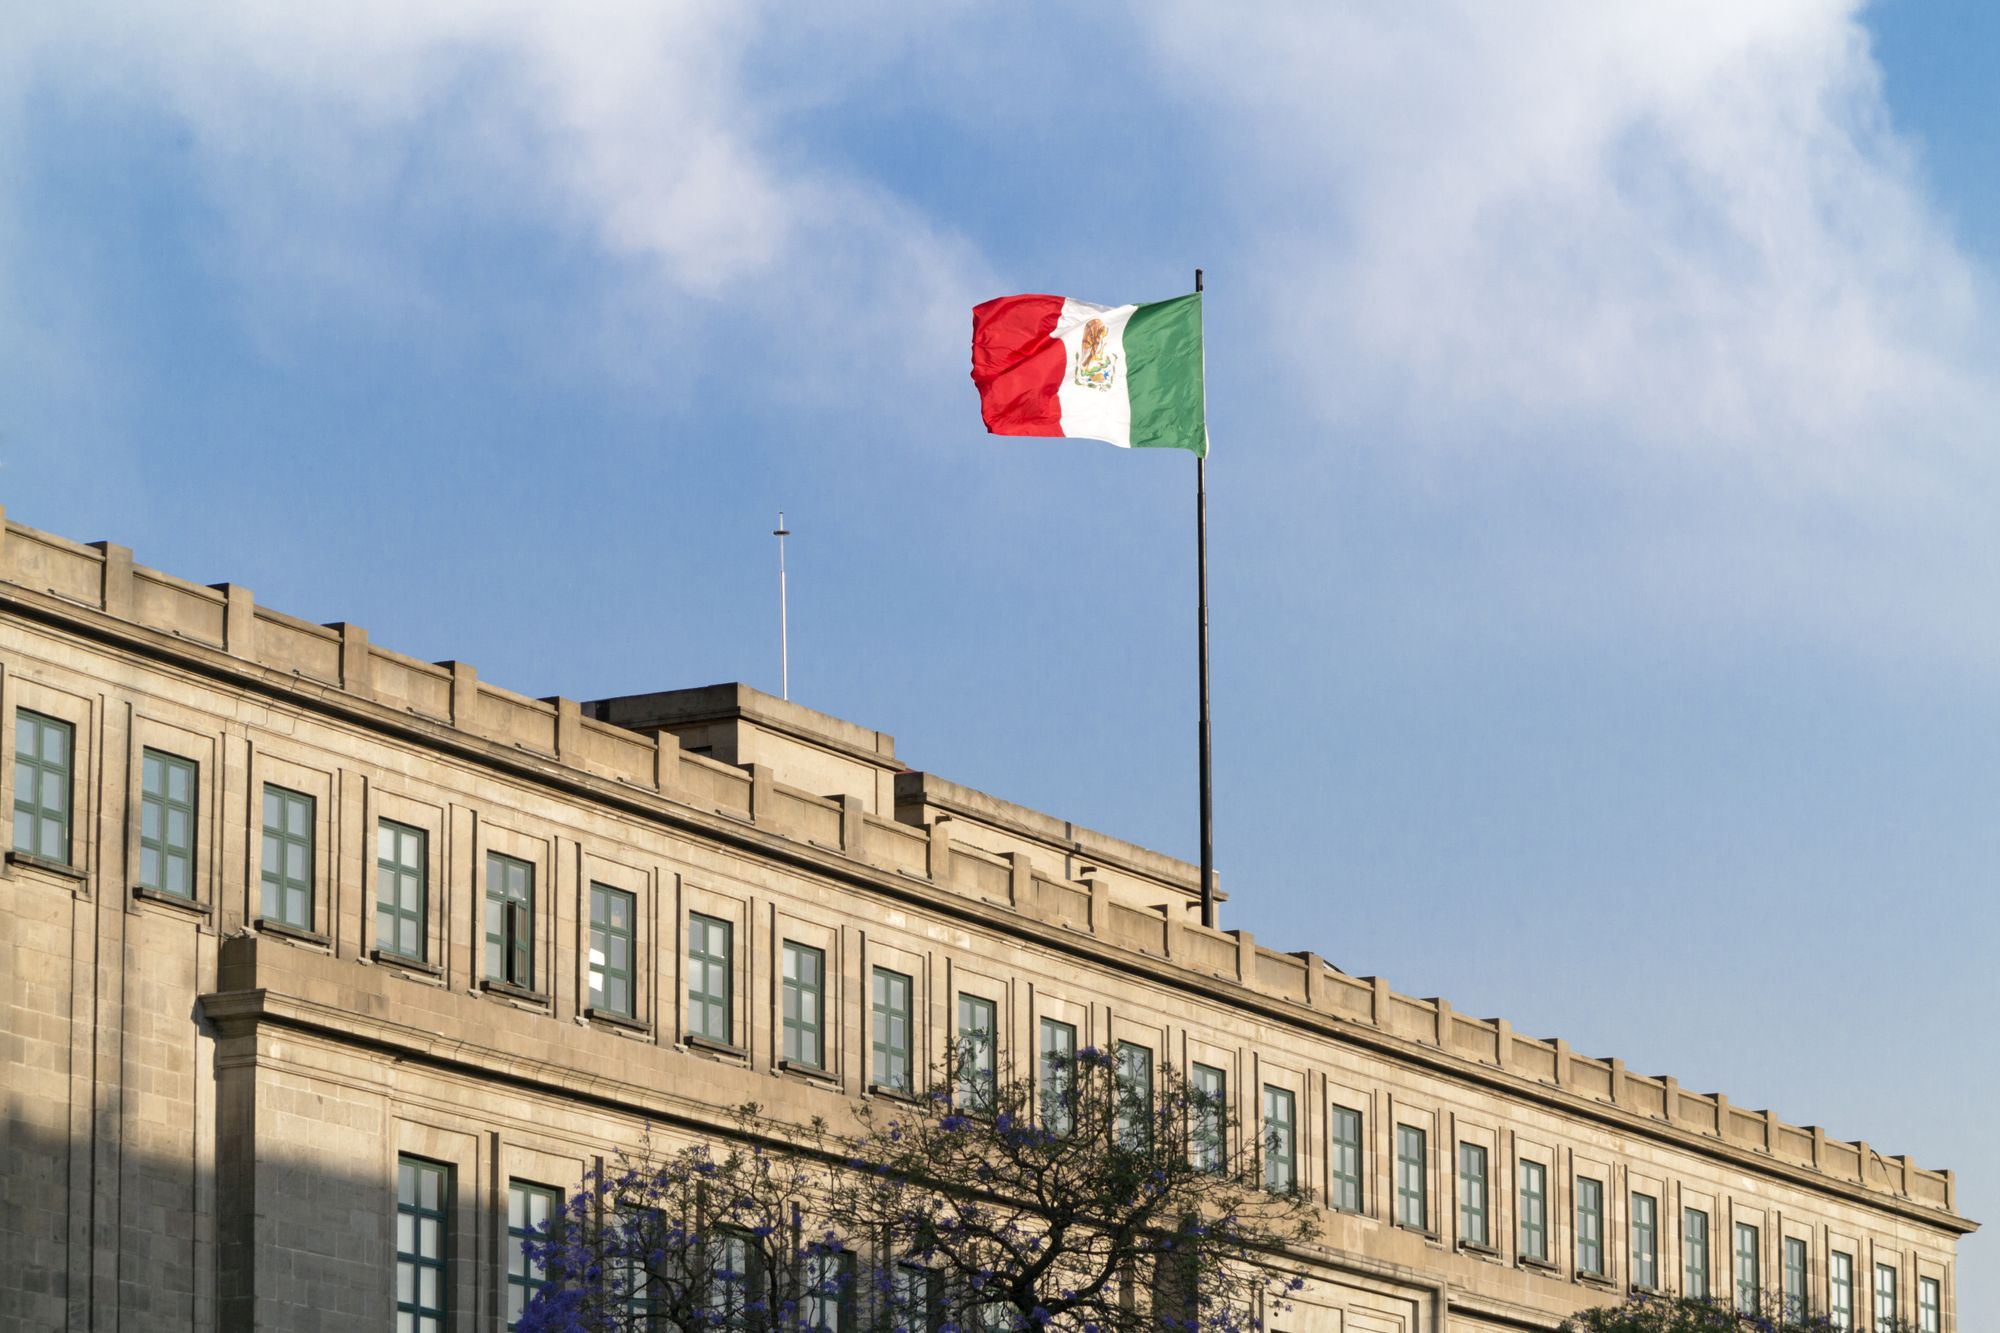 Mexico's Proposed Law To Federally Legalize Marijuana Aims At Cutting Out Drug-Related Crime